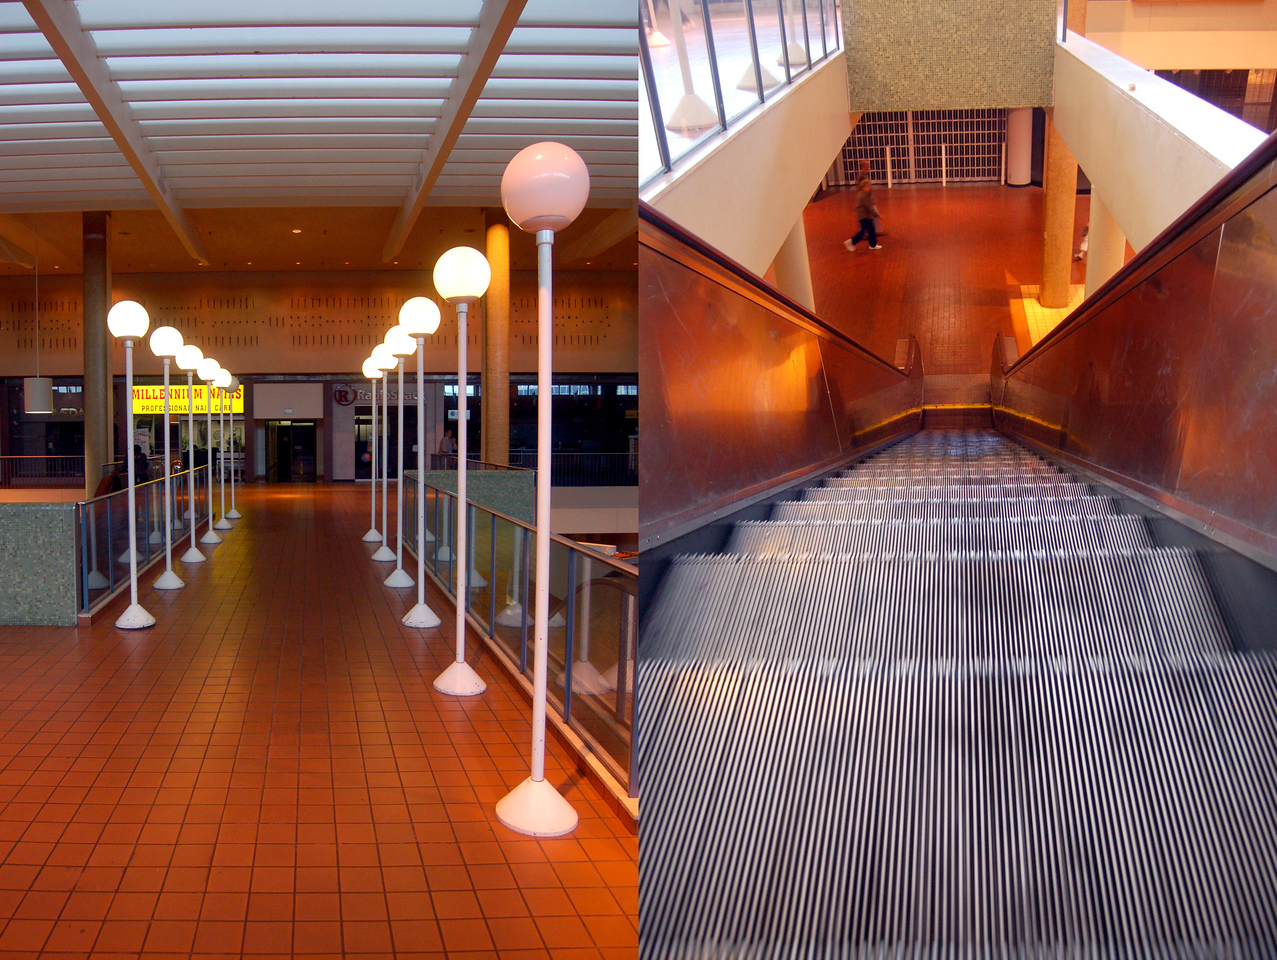 Lights & Escalators